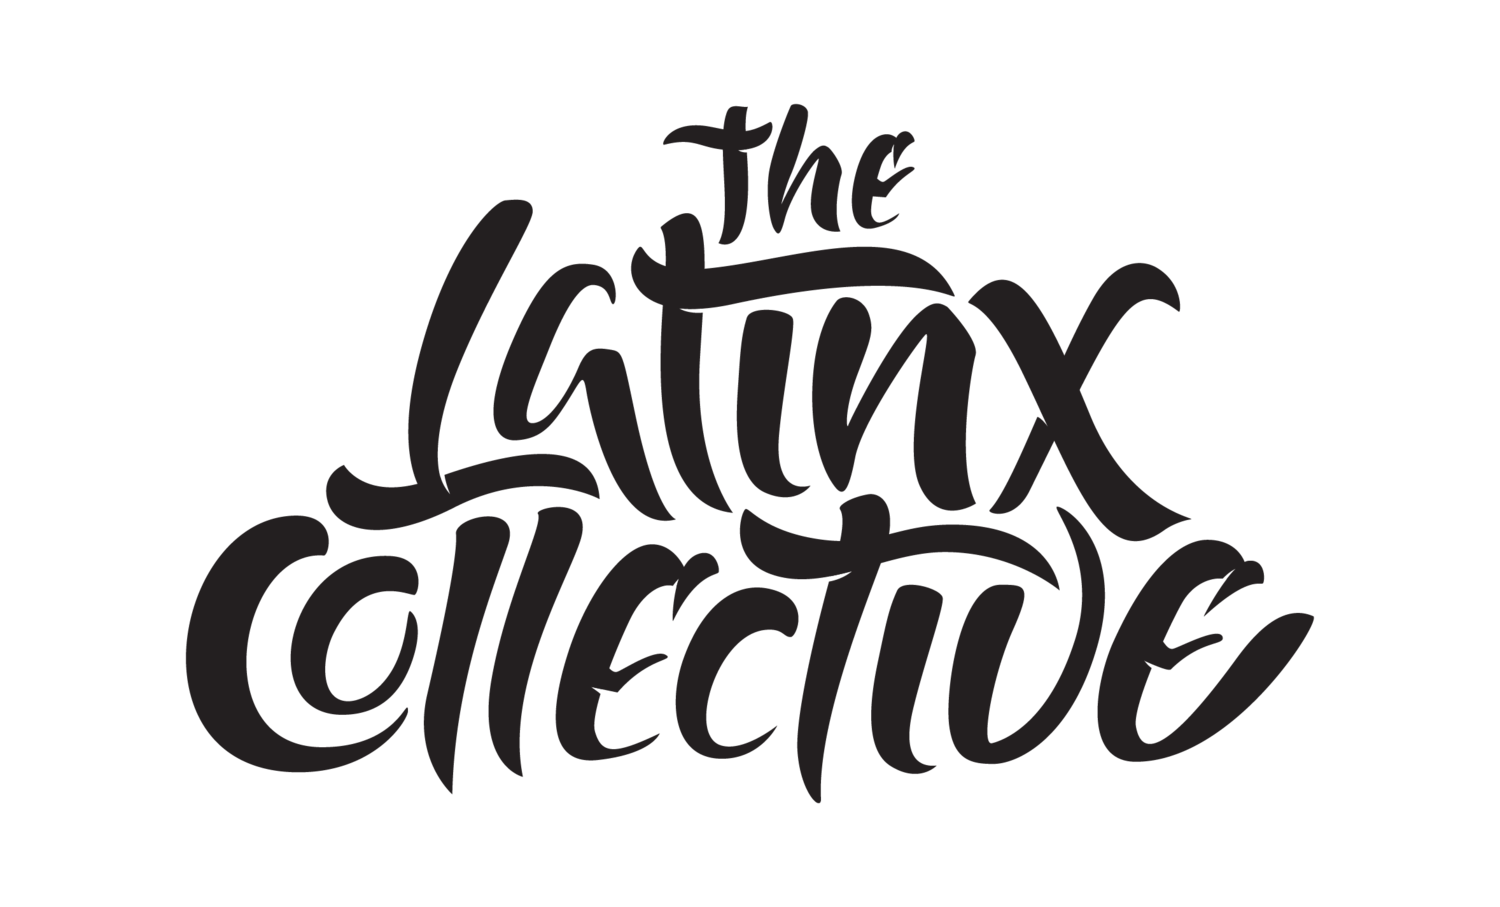 The Latinx Collective